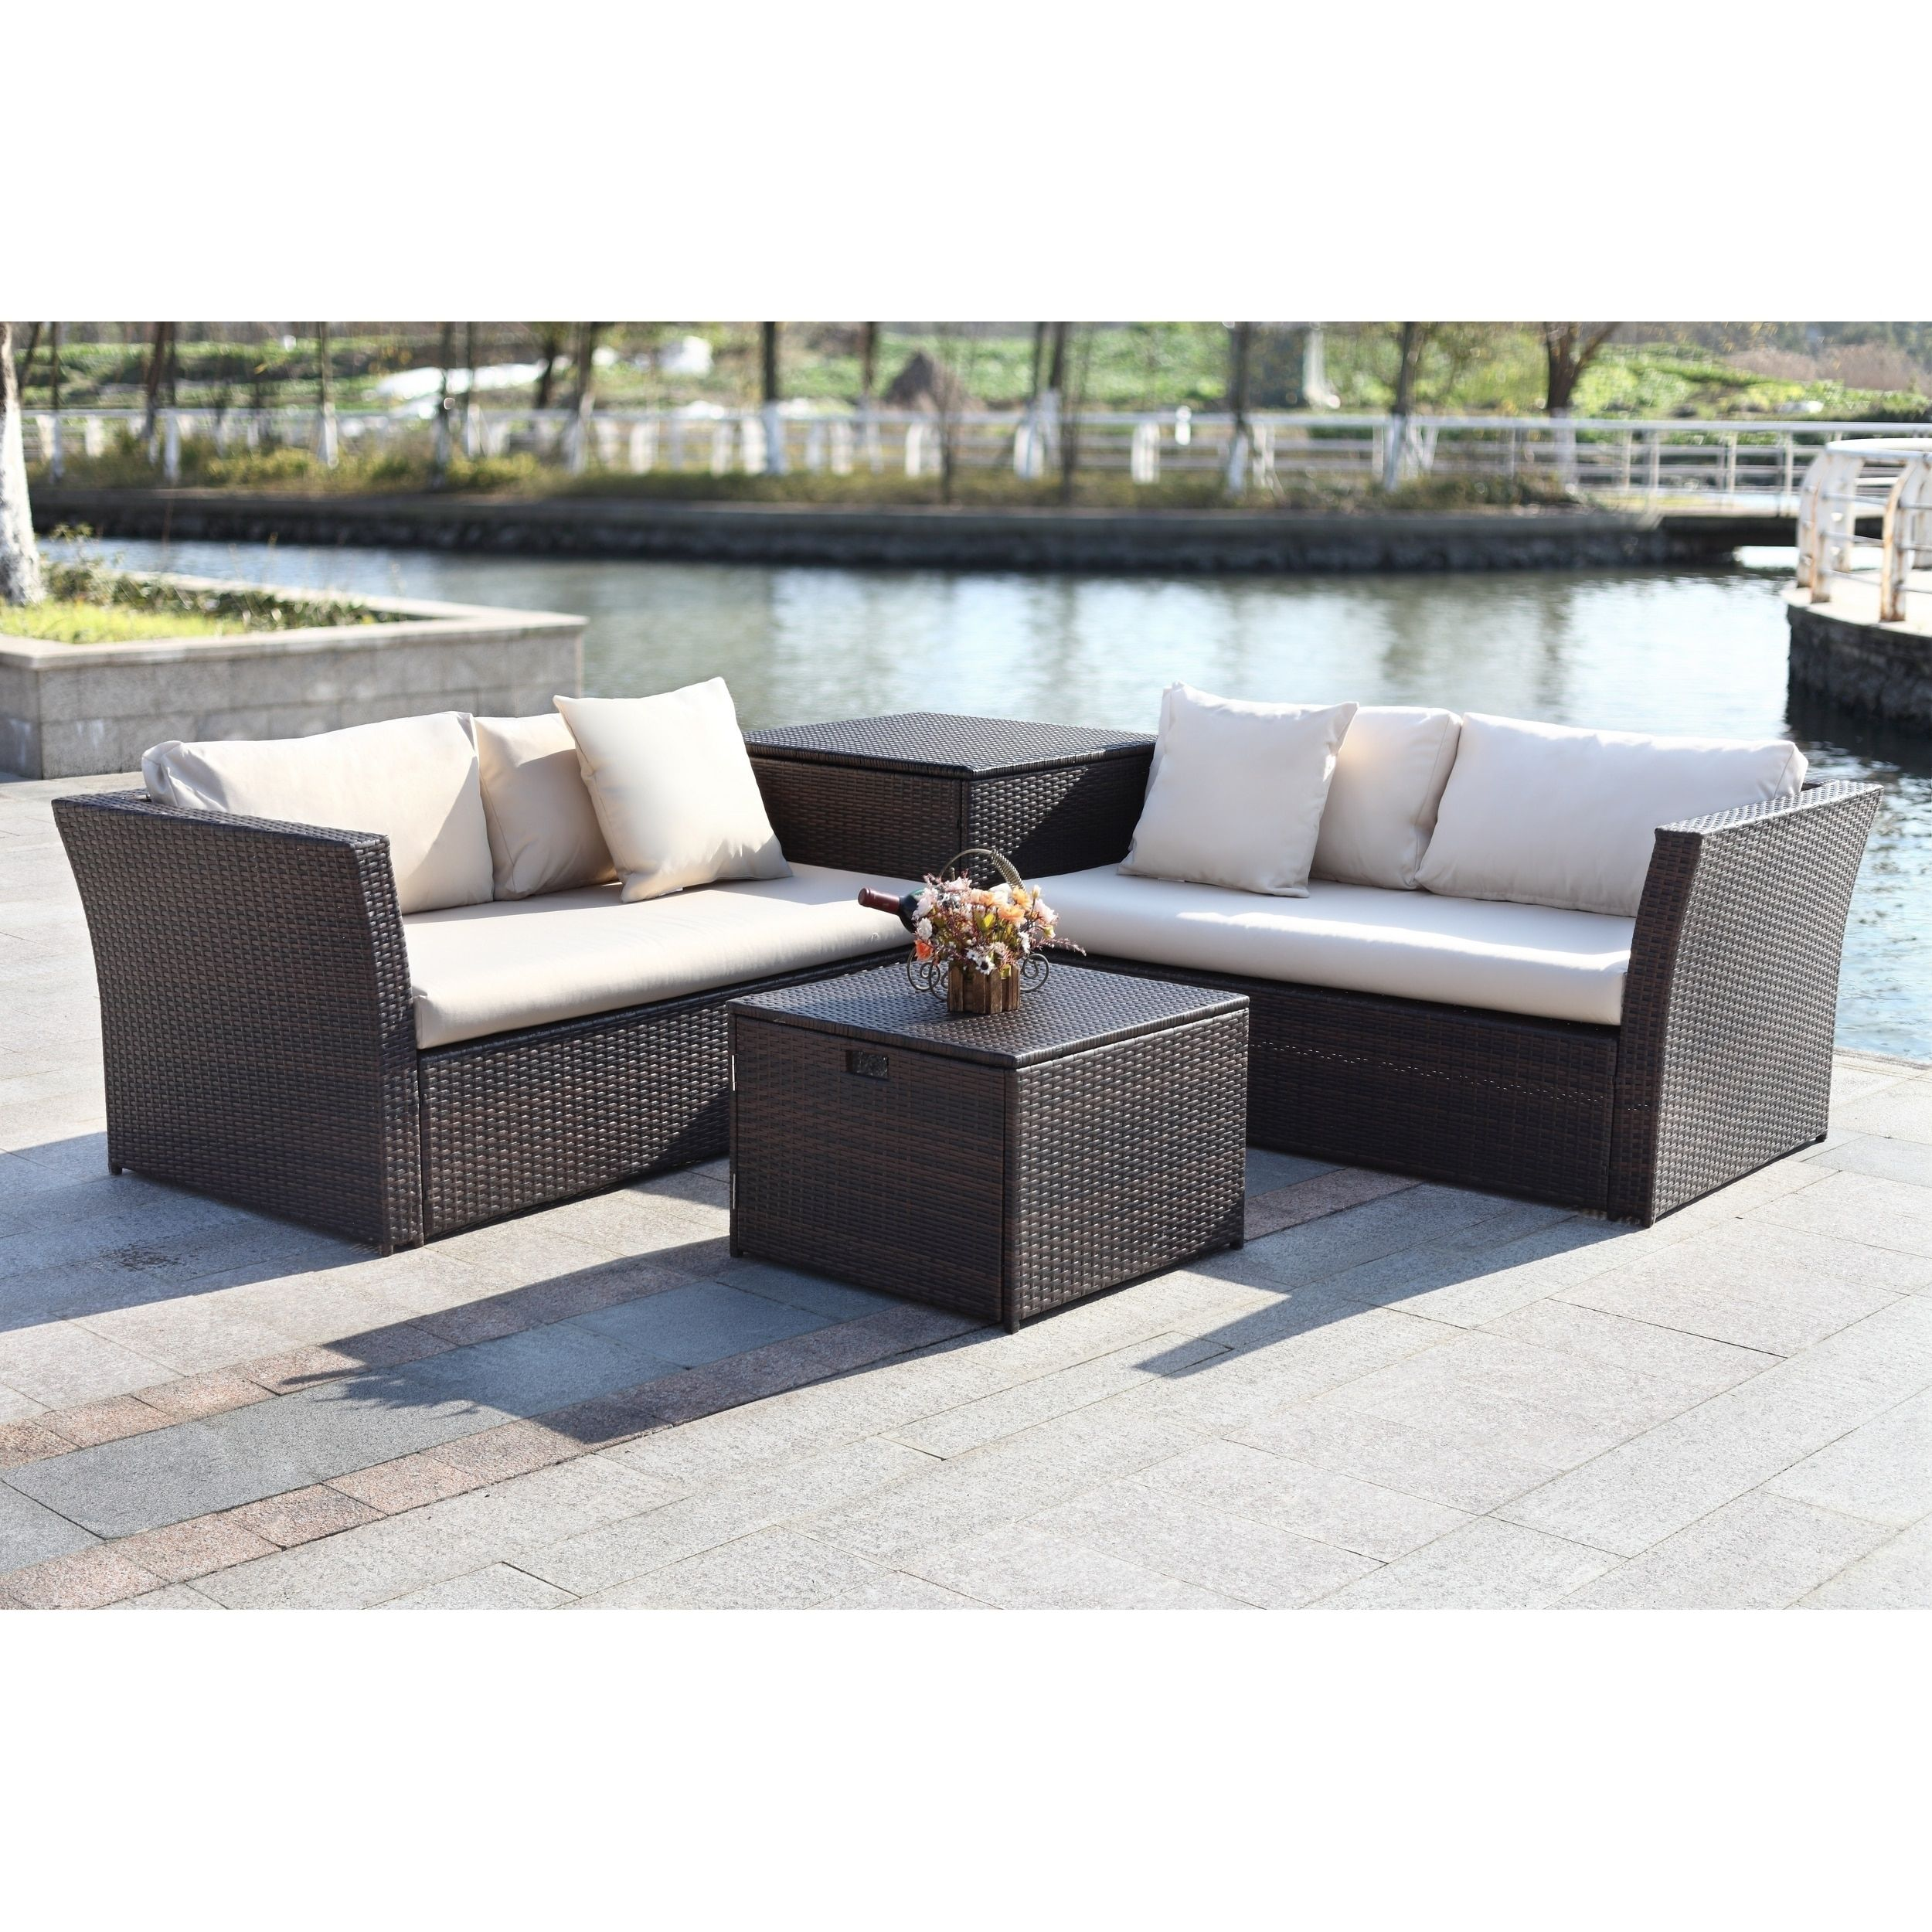 Safavieh Welch Brown/Beige Outdoor Living Sectional Set ... on Outdoor Living Wicker id=99106